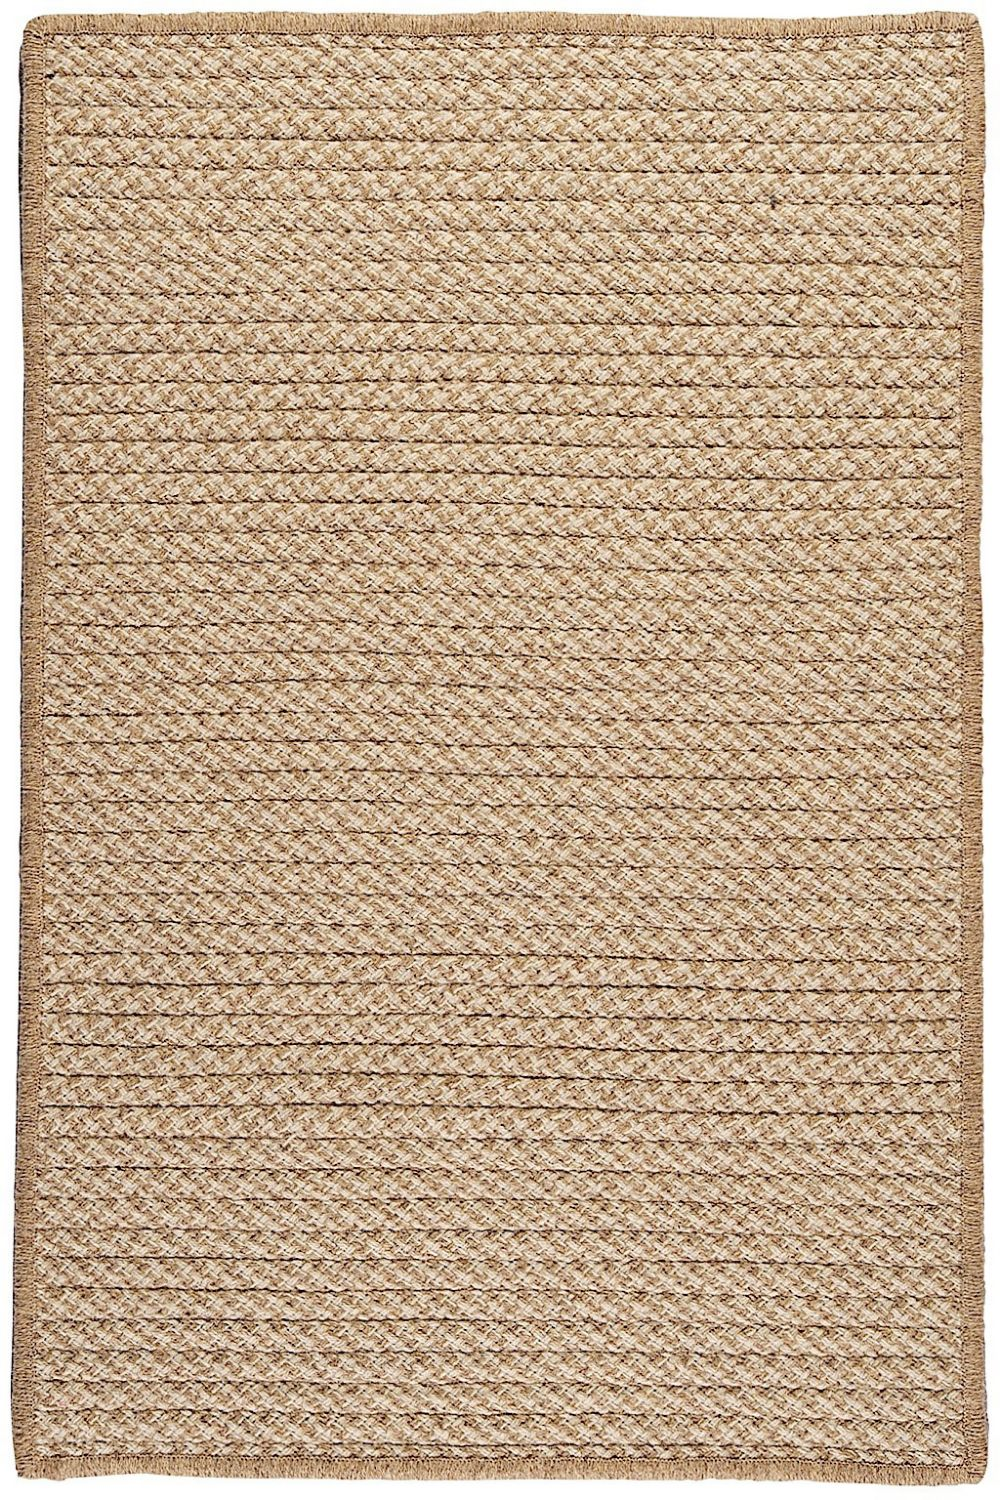 colonial mills natural wool houndstooth braided area rug collection